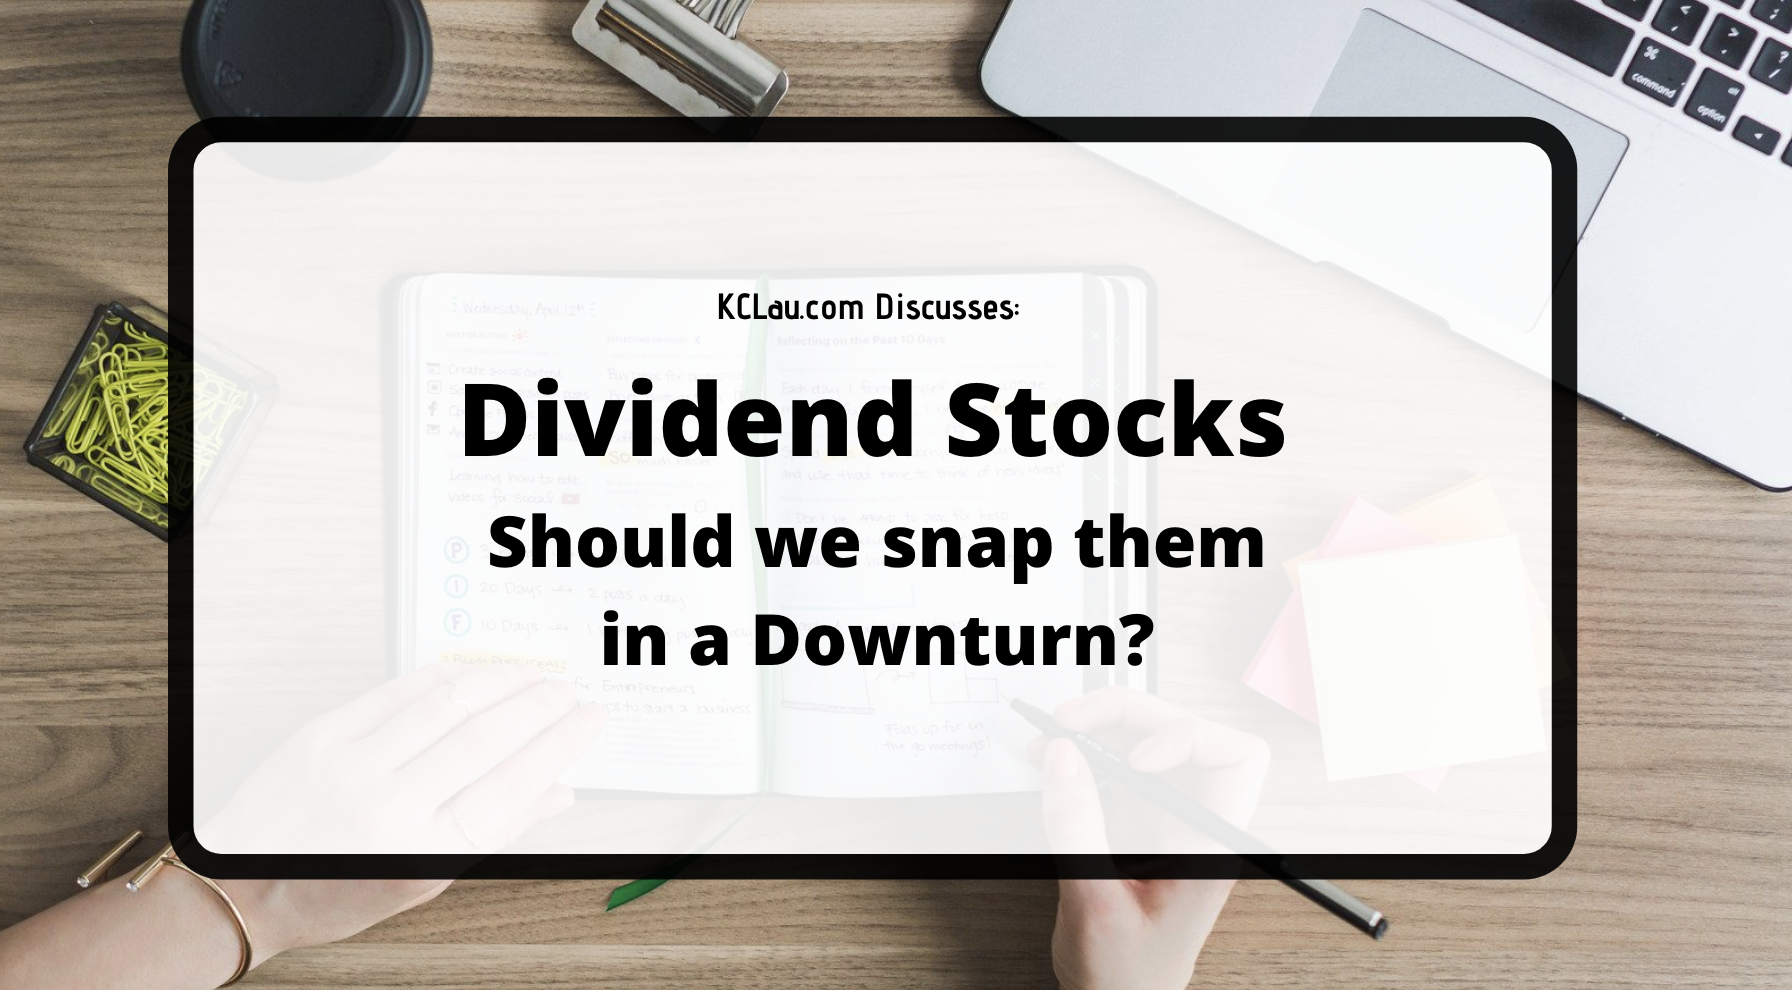 Should We Snap Up Dividend Stocks in a Downturn?